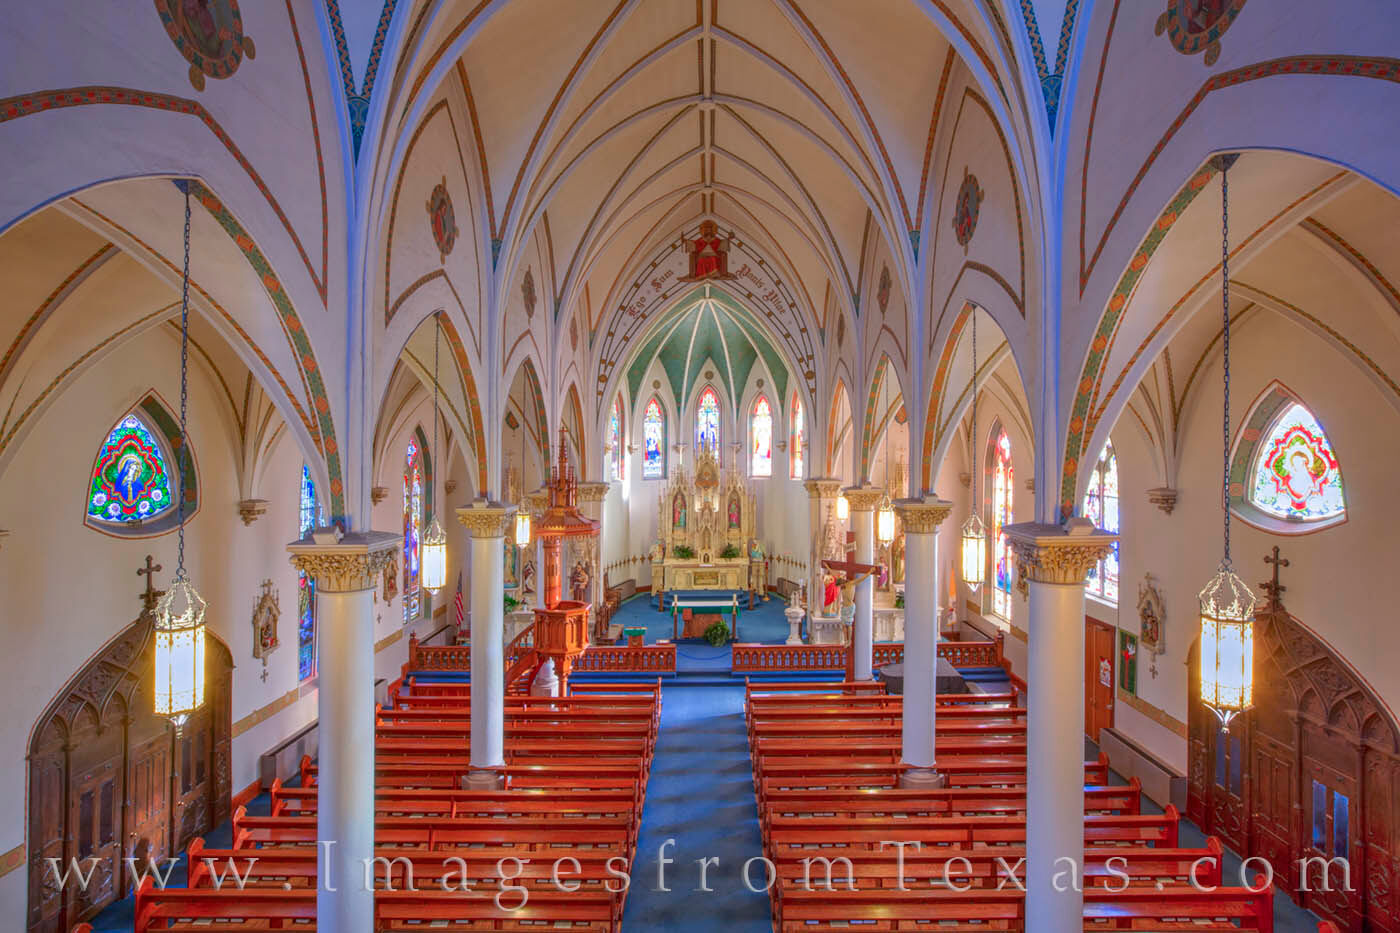 Constructed in 1906, St. Mary's Catholic Church is one of the Painted Churches of central Texas. Seen here from the balcony...